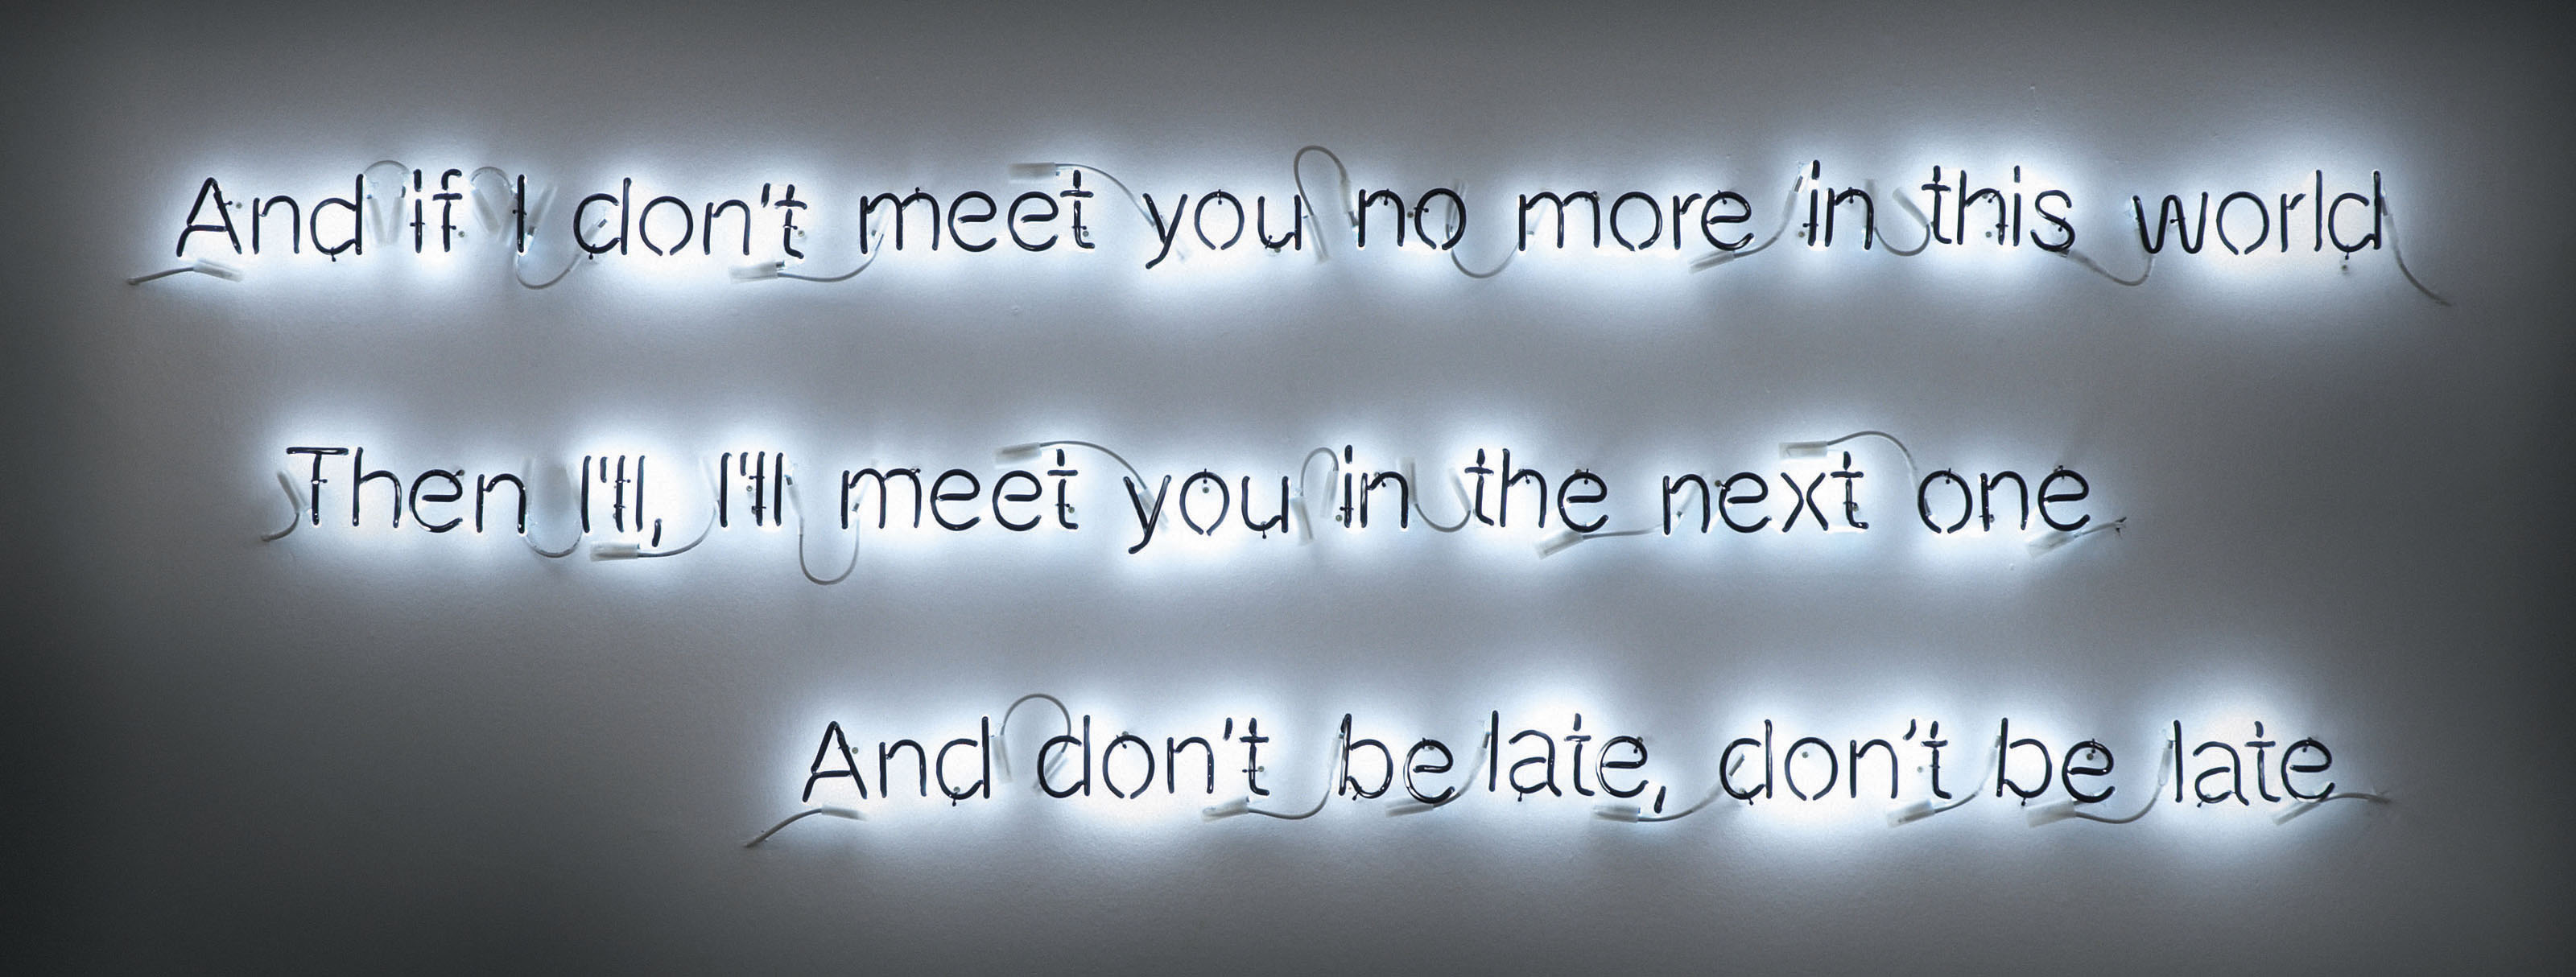 And if I don't meet you no more...